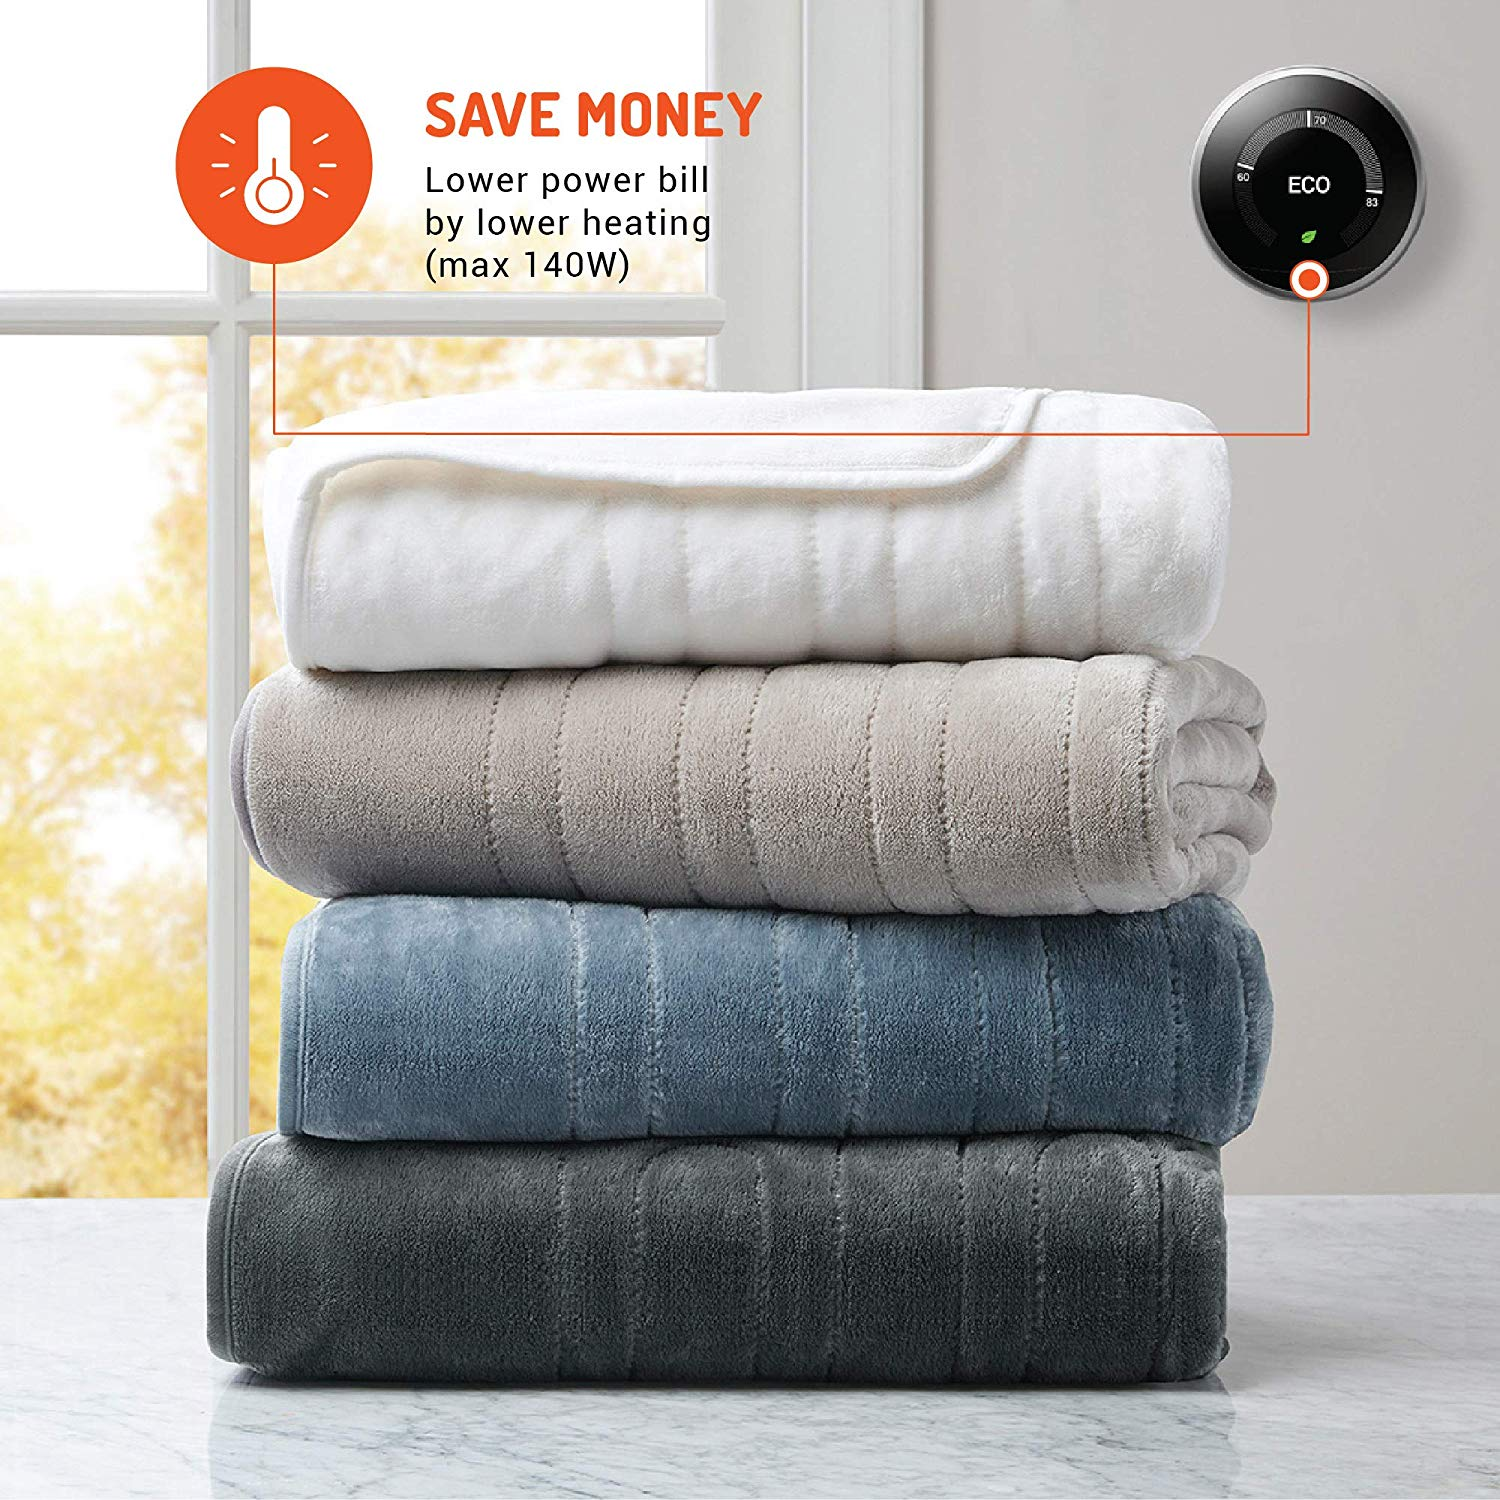 Fast Heating Plush Microlight 3 Heat Settings Degrees of Comfort Electric Heated Throw Blanket UL Certified /& Low EMF Radiation 6ft Cord and 3ft Controller Cable Easy to Wash 50x60 Red